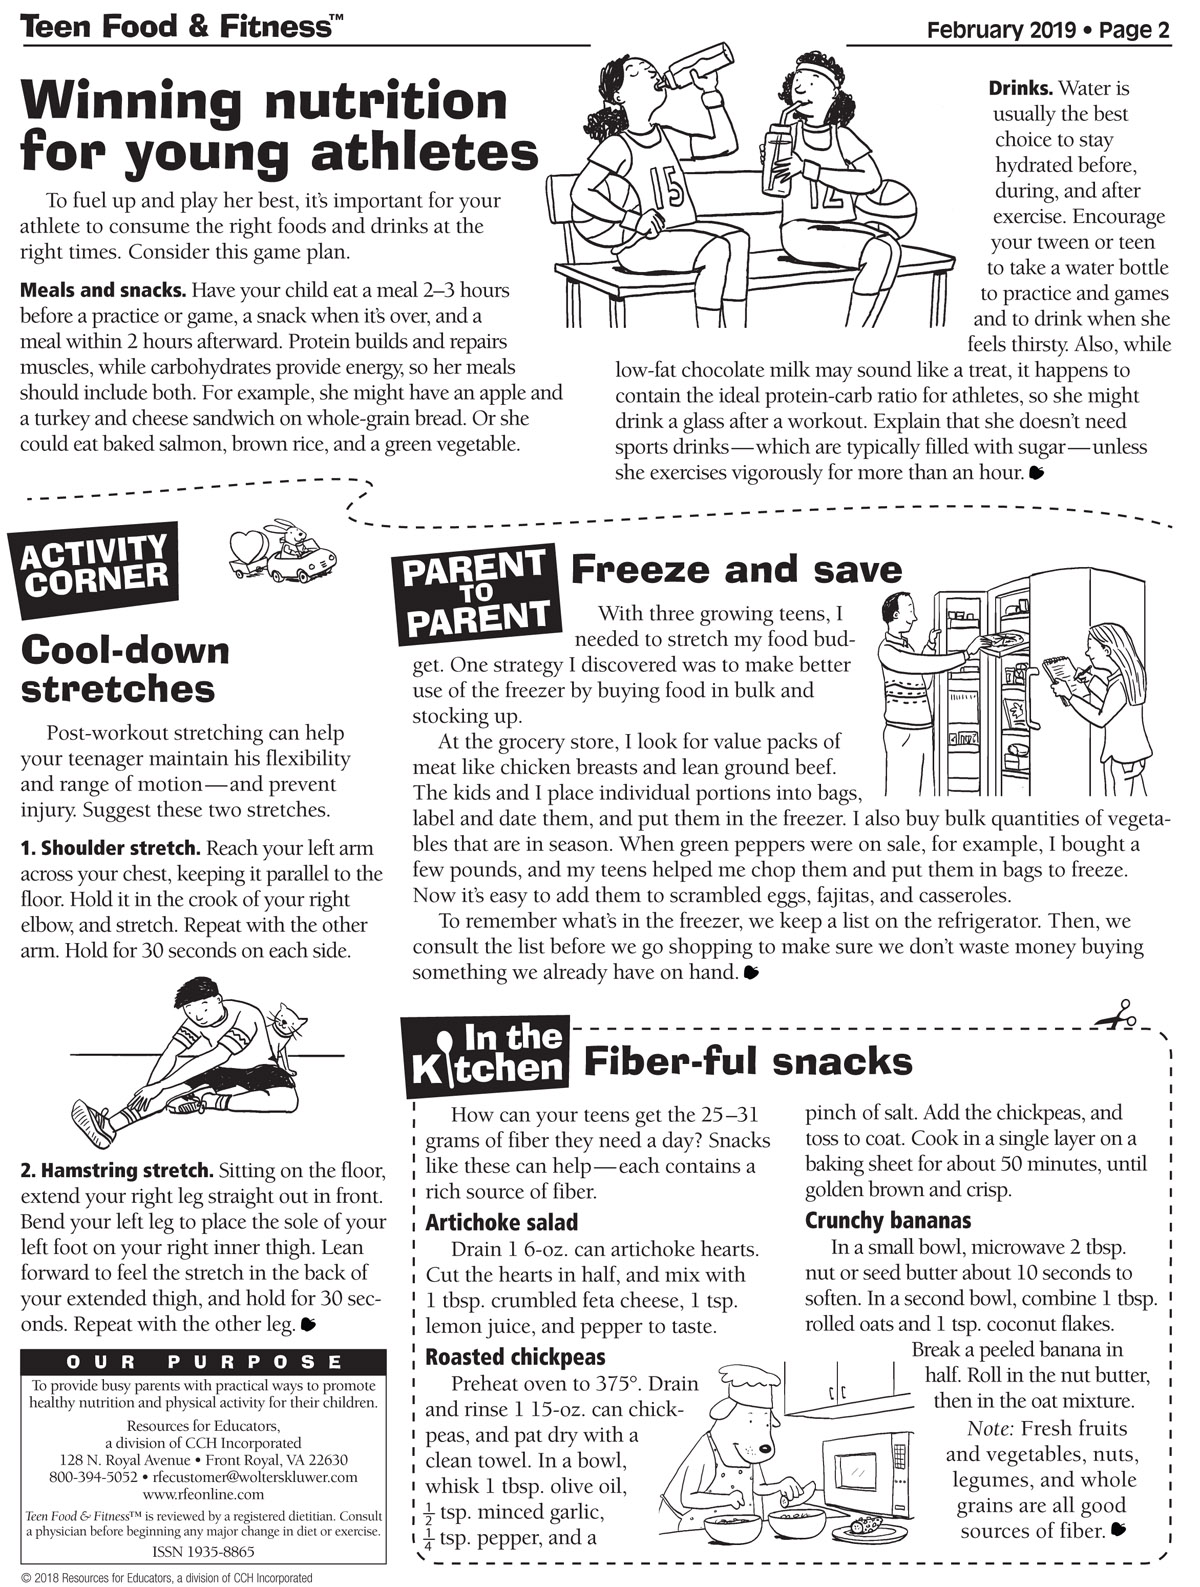 Food & Fitness February 2019 issue page 2